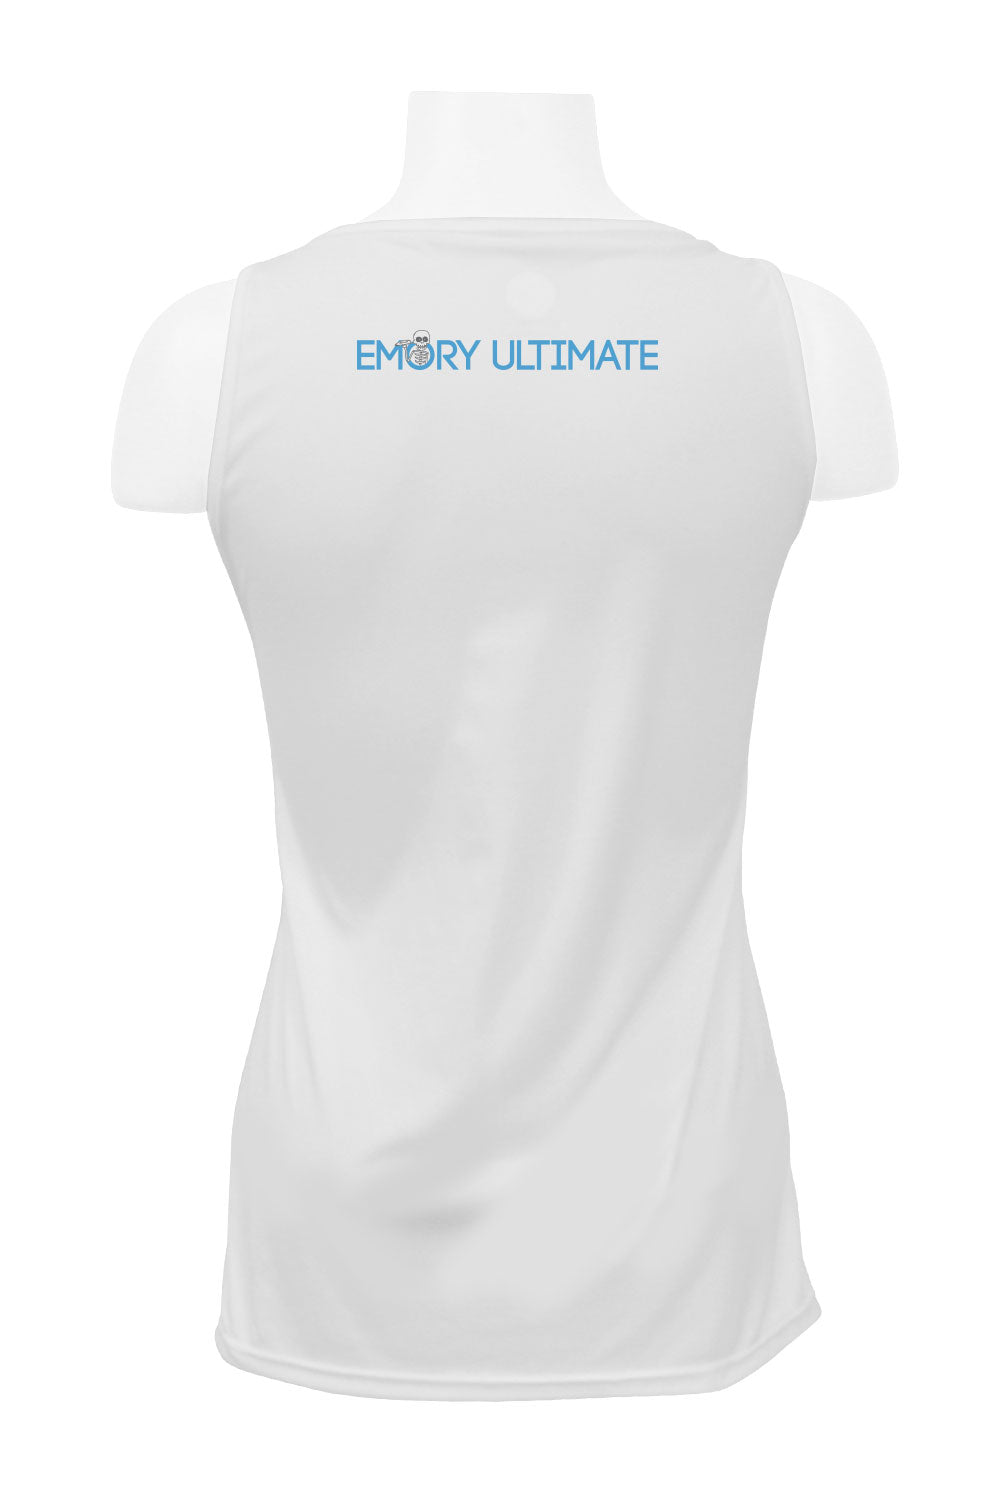 Emory Women's Ultimate Tank (White)